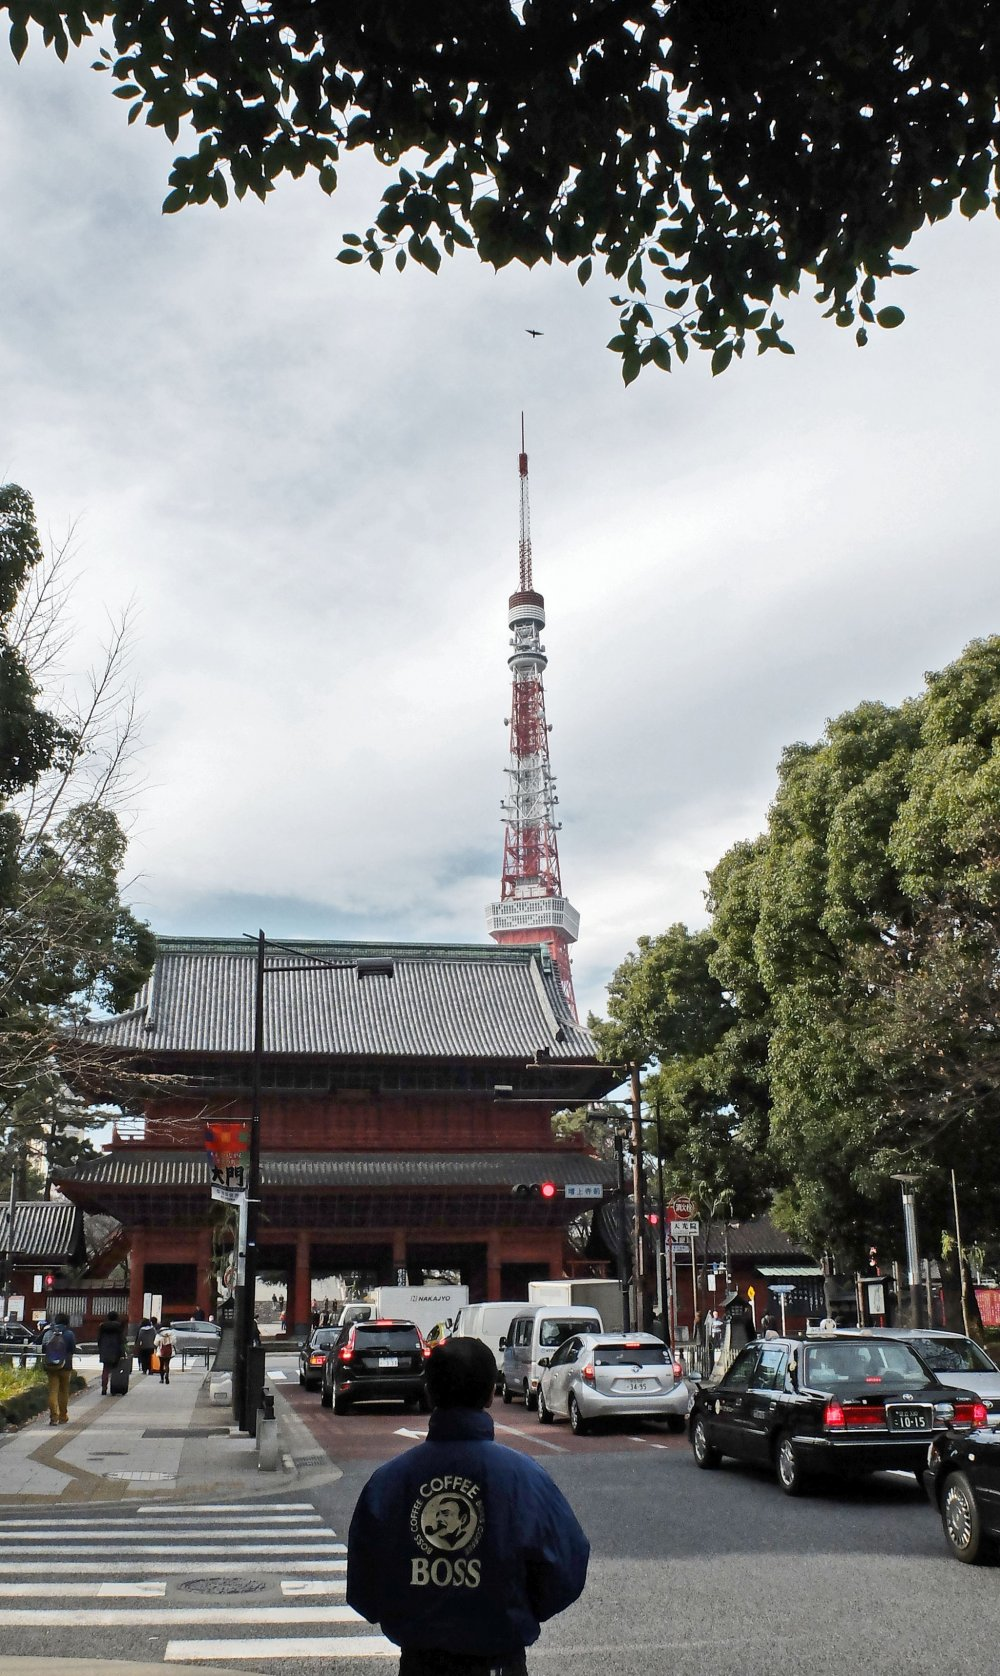 Tokyo Tower can be seen from afar and it is an important part of the city of Tokyo.